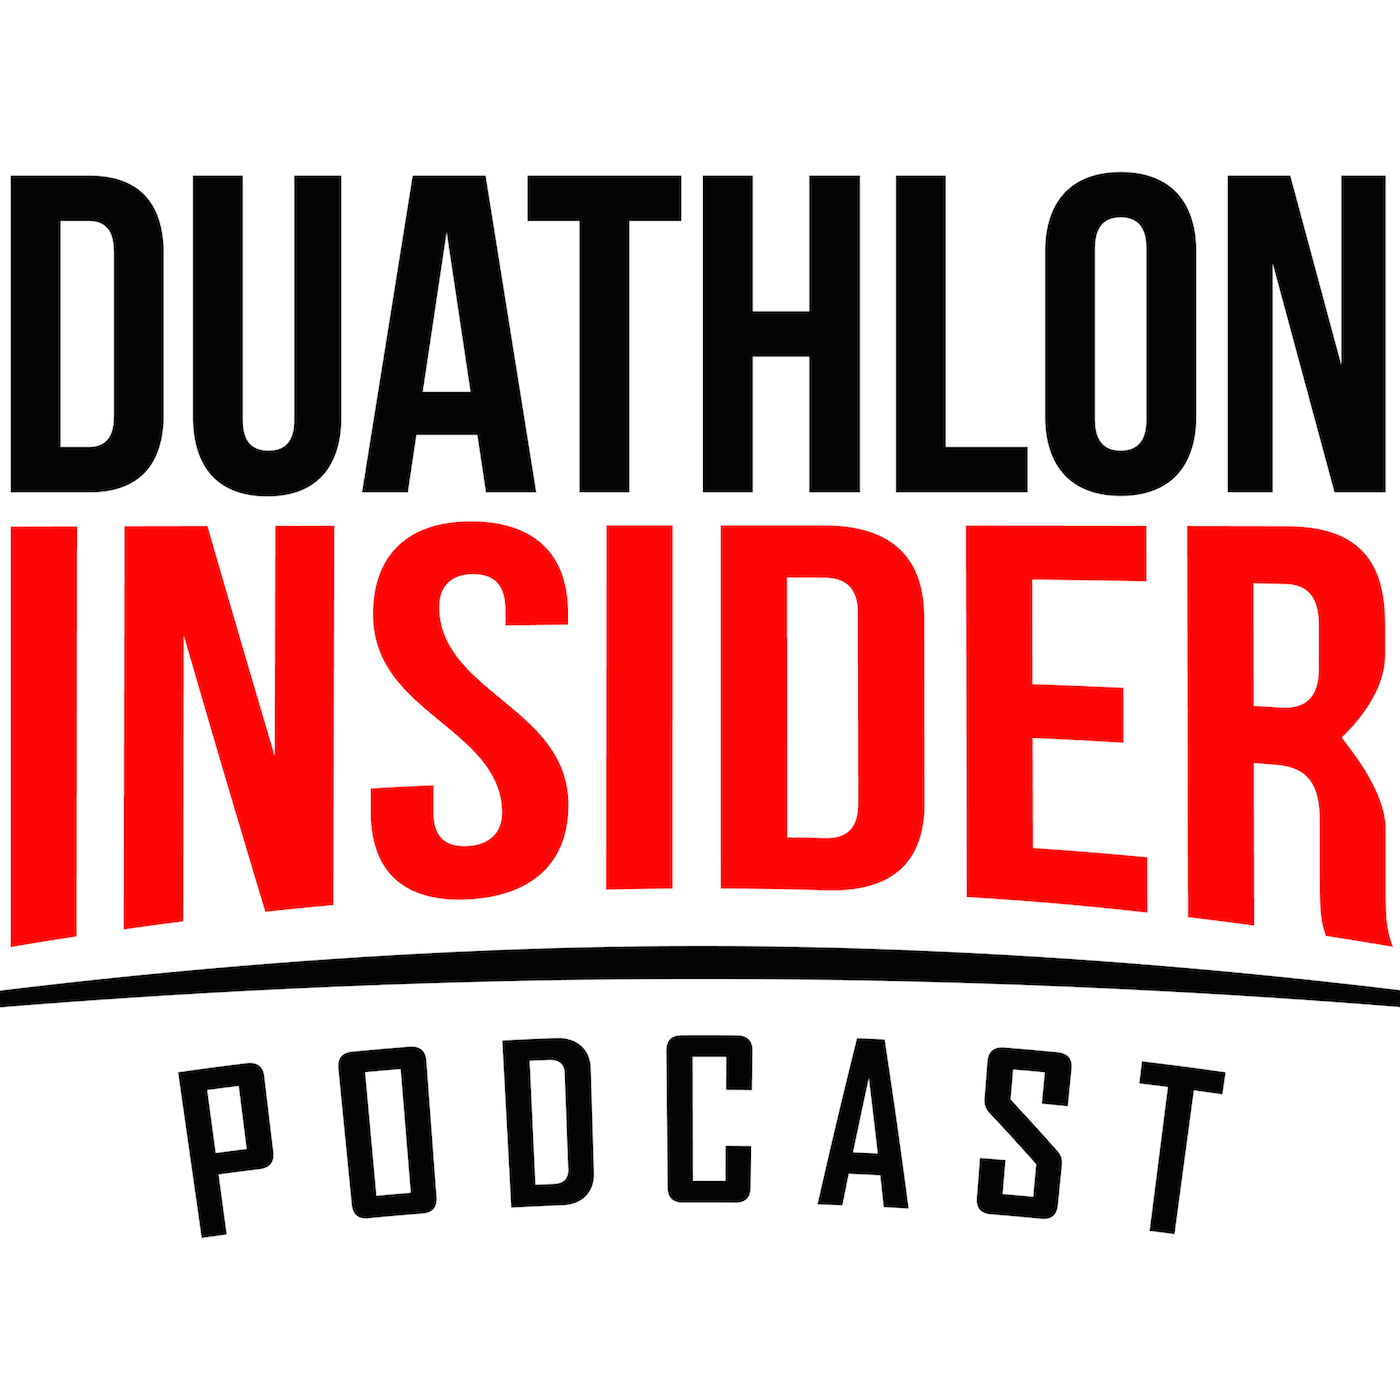 Duathlon Insider Podcast: Training Advice & News